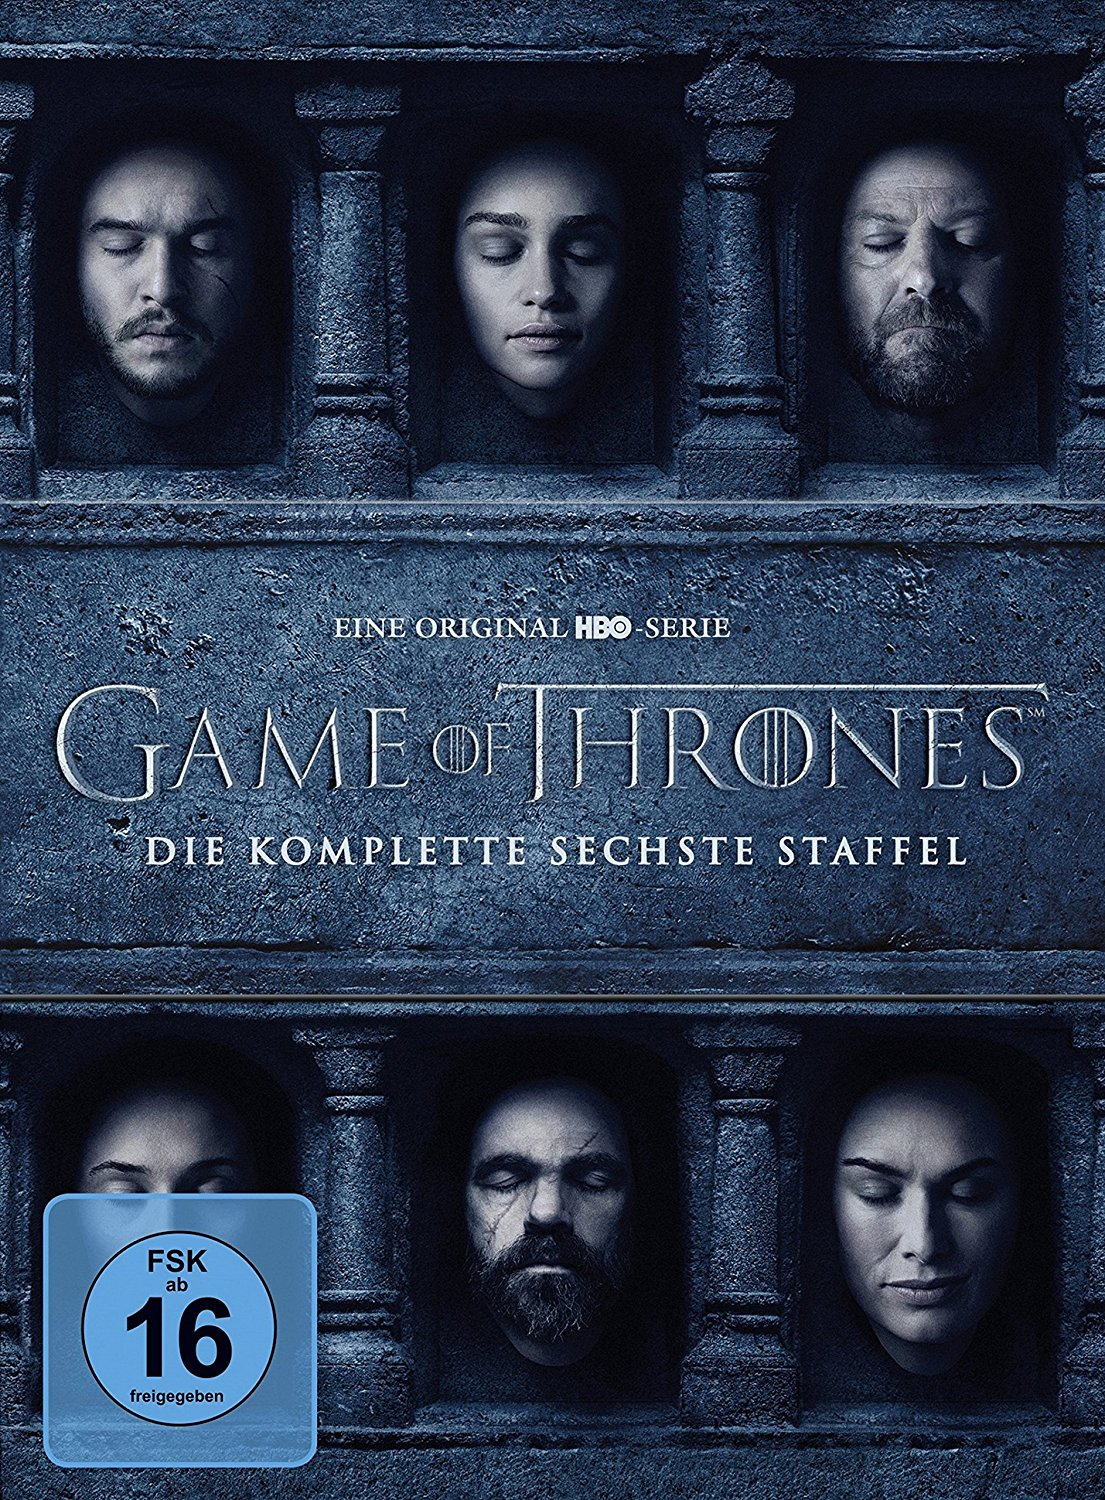 Game of Thrones Staffel 6 bei Amazon bestellen